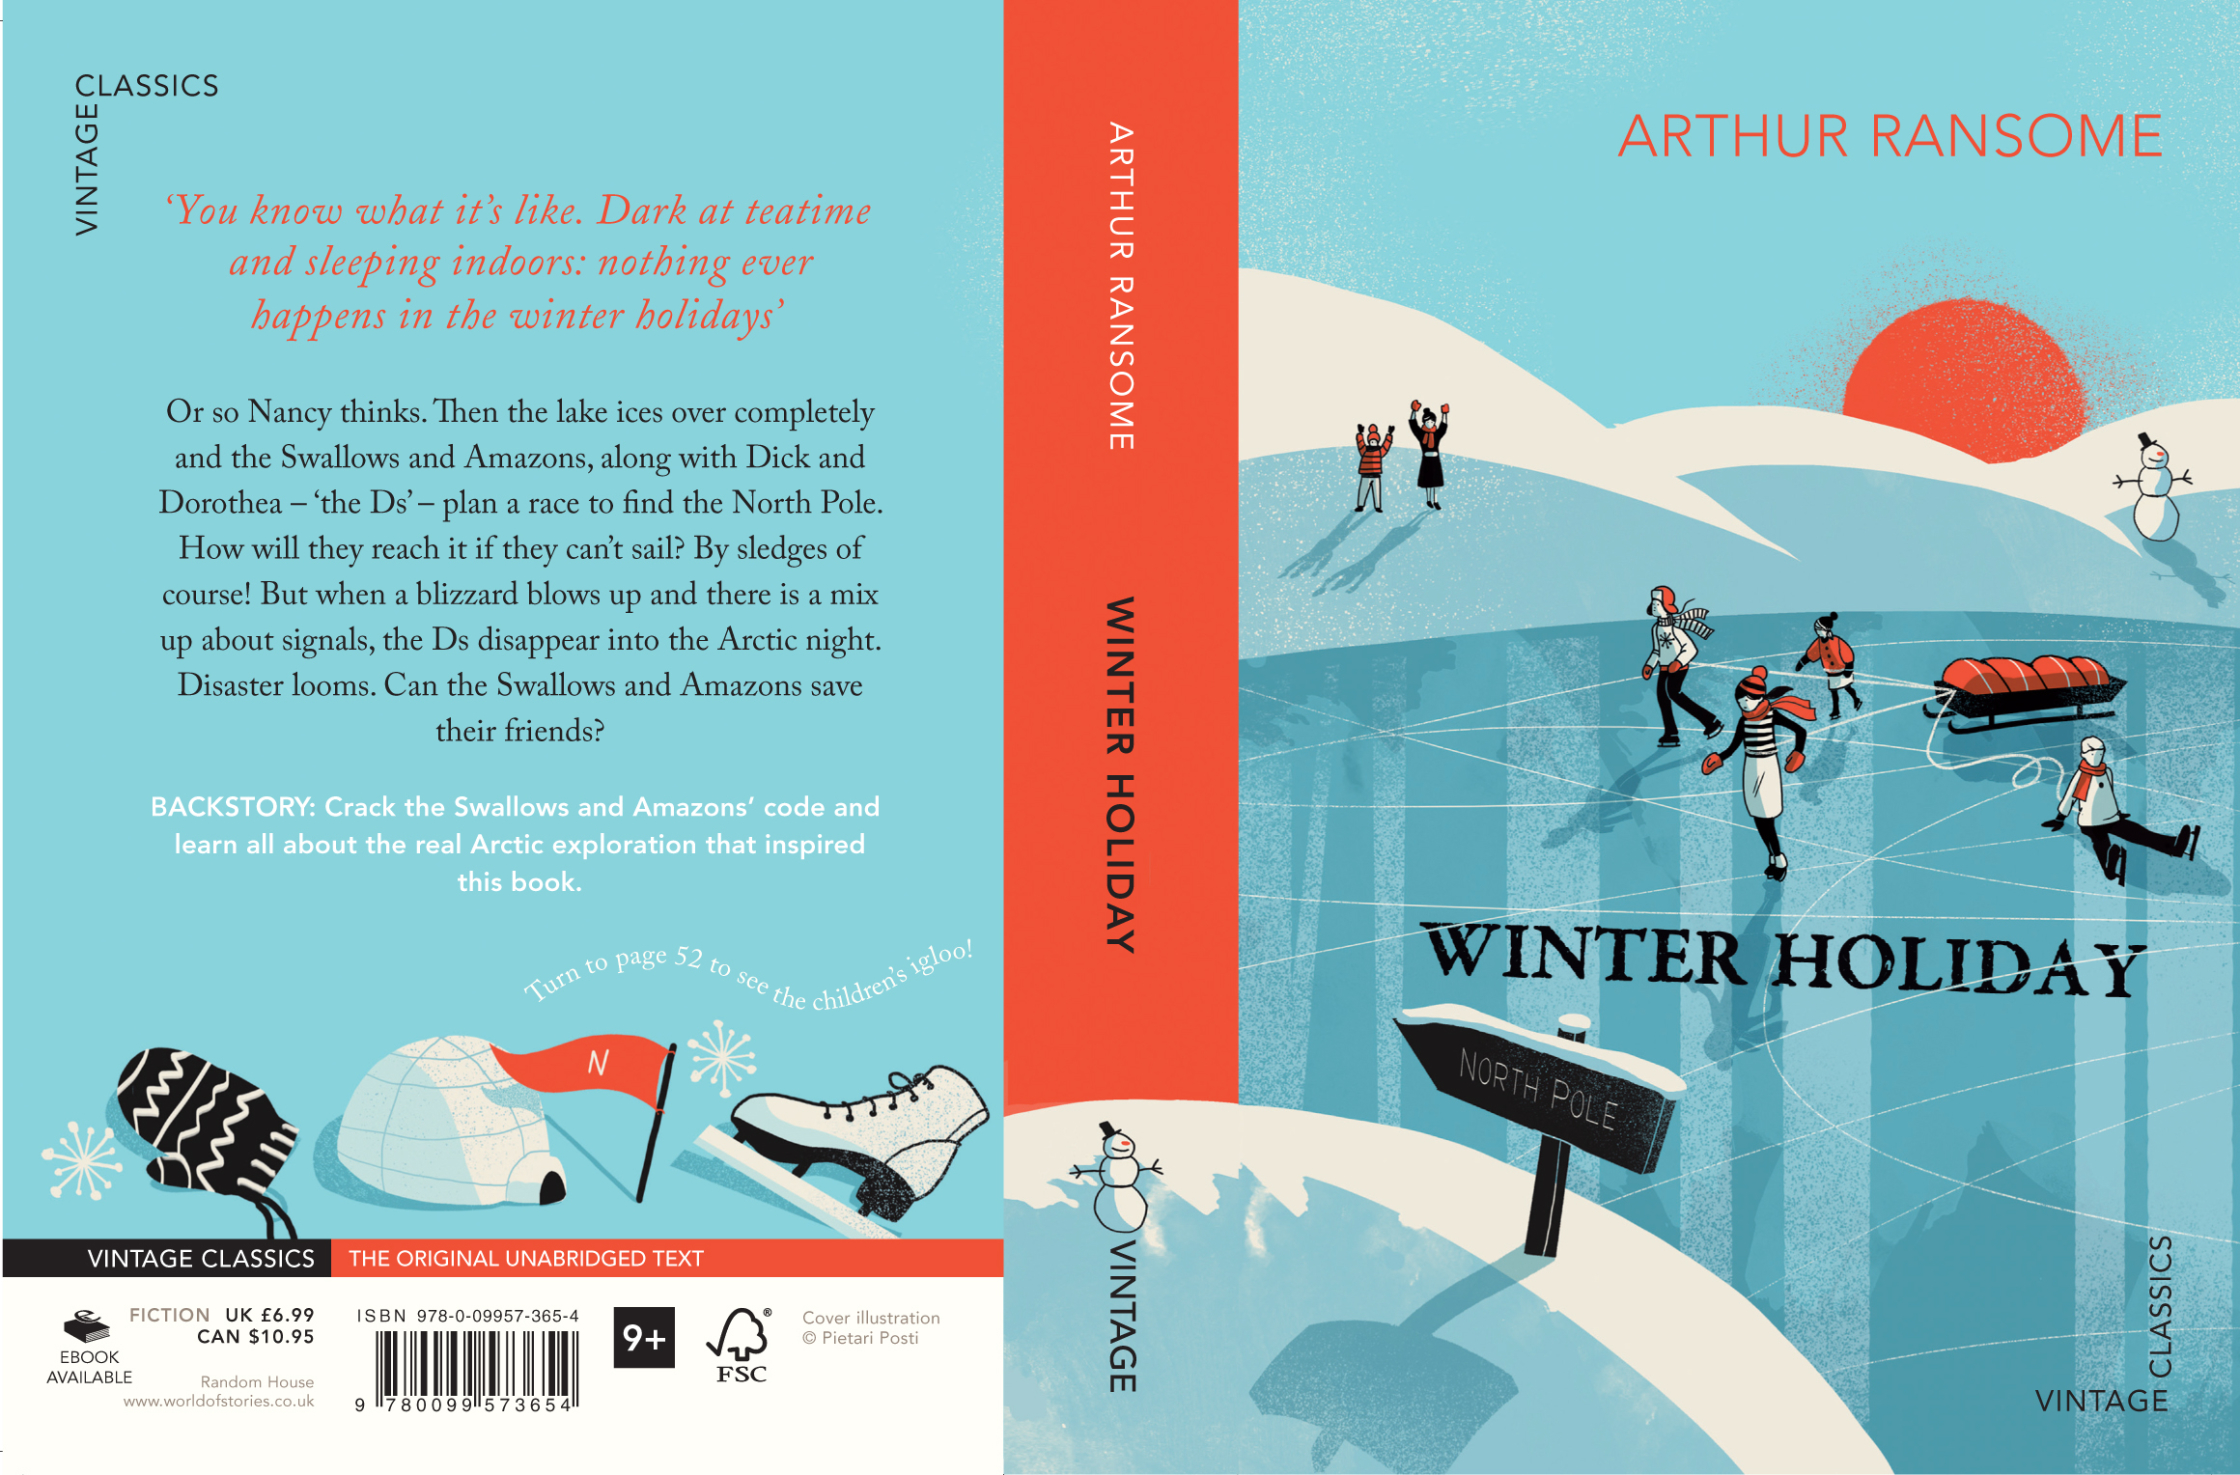 Arthur Ransome - Winter Holiday Cover